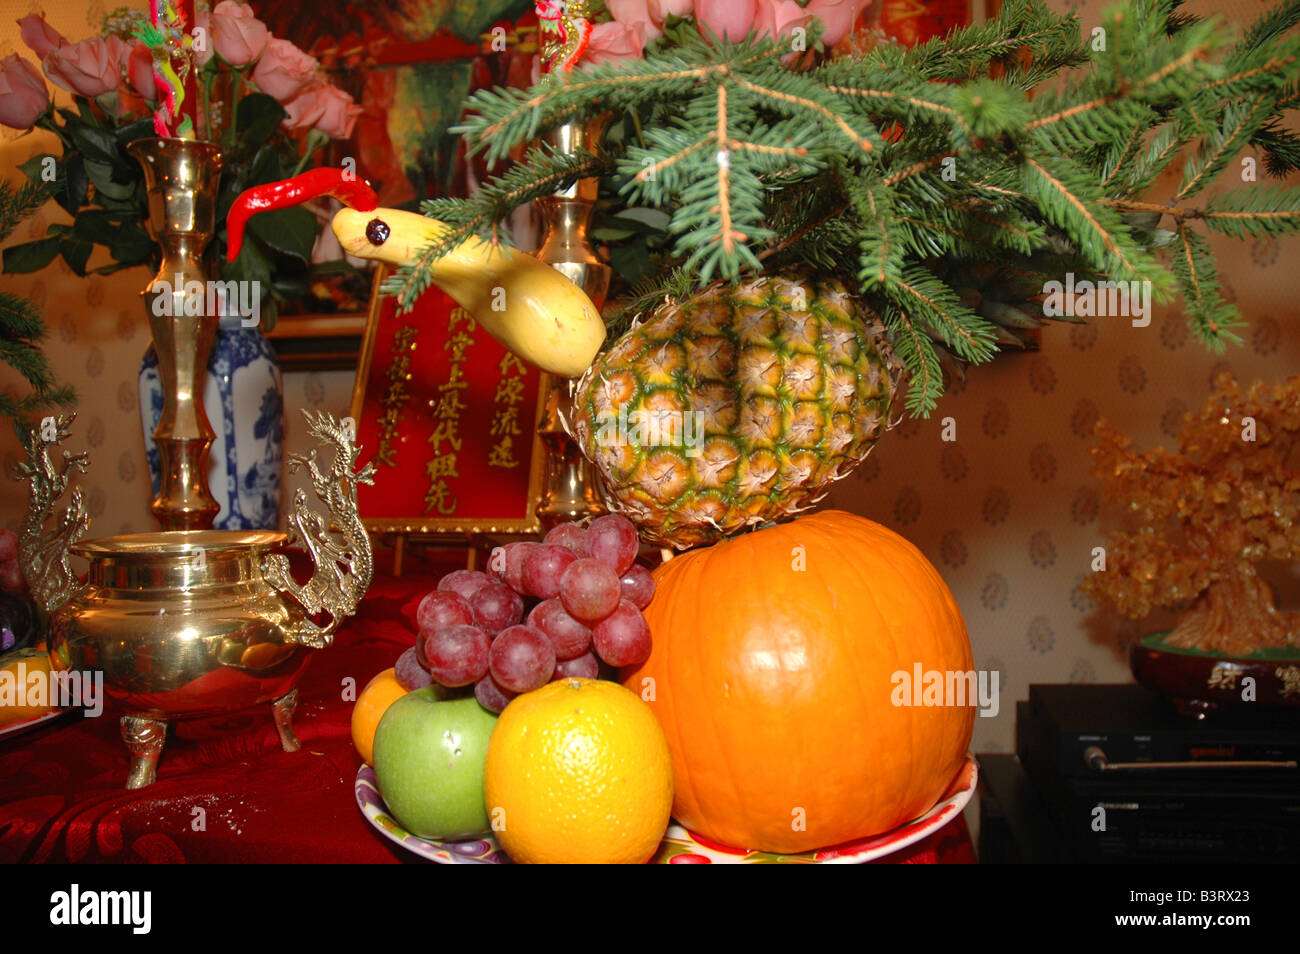 Pine Branches For Decoration A Decoration Made Of Fruits And Pine Branches To Replicate A